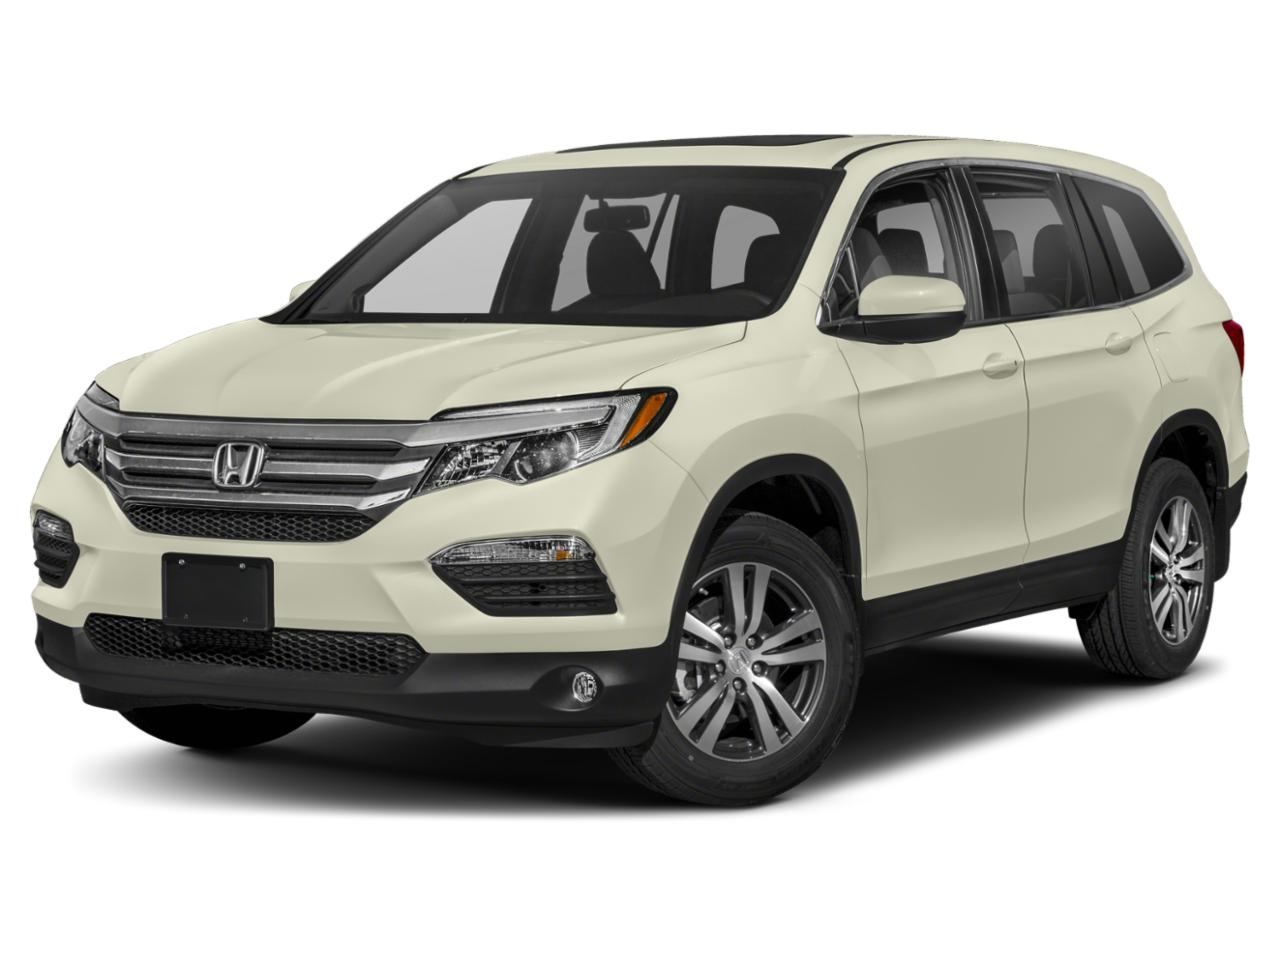 2018 Honda Pilot Vehicle Photo in Manassas, VA 20109